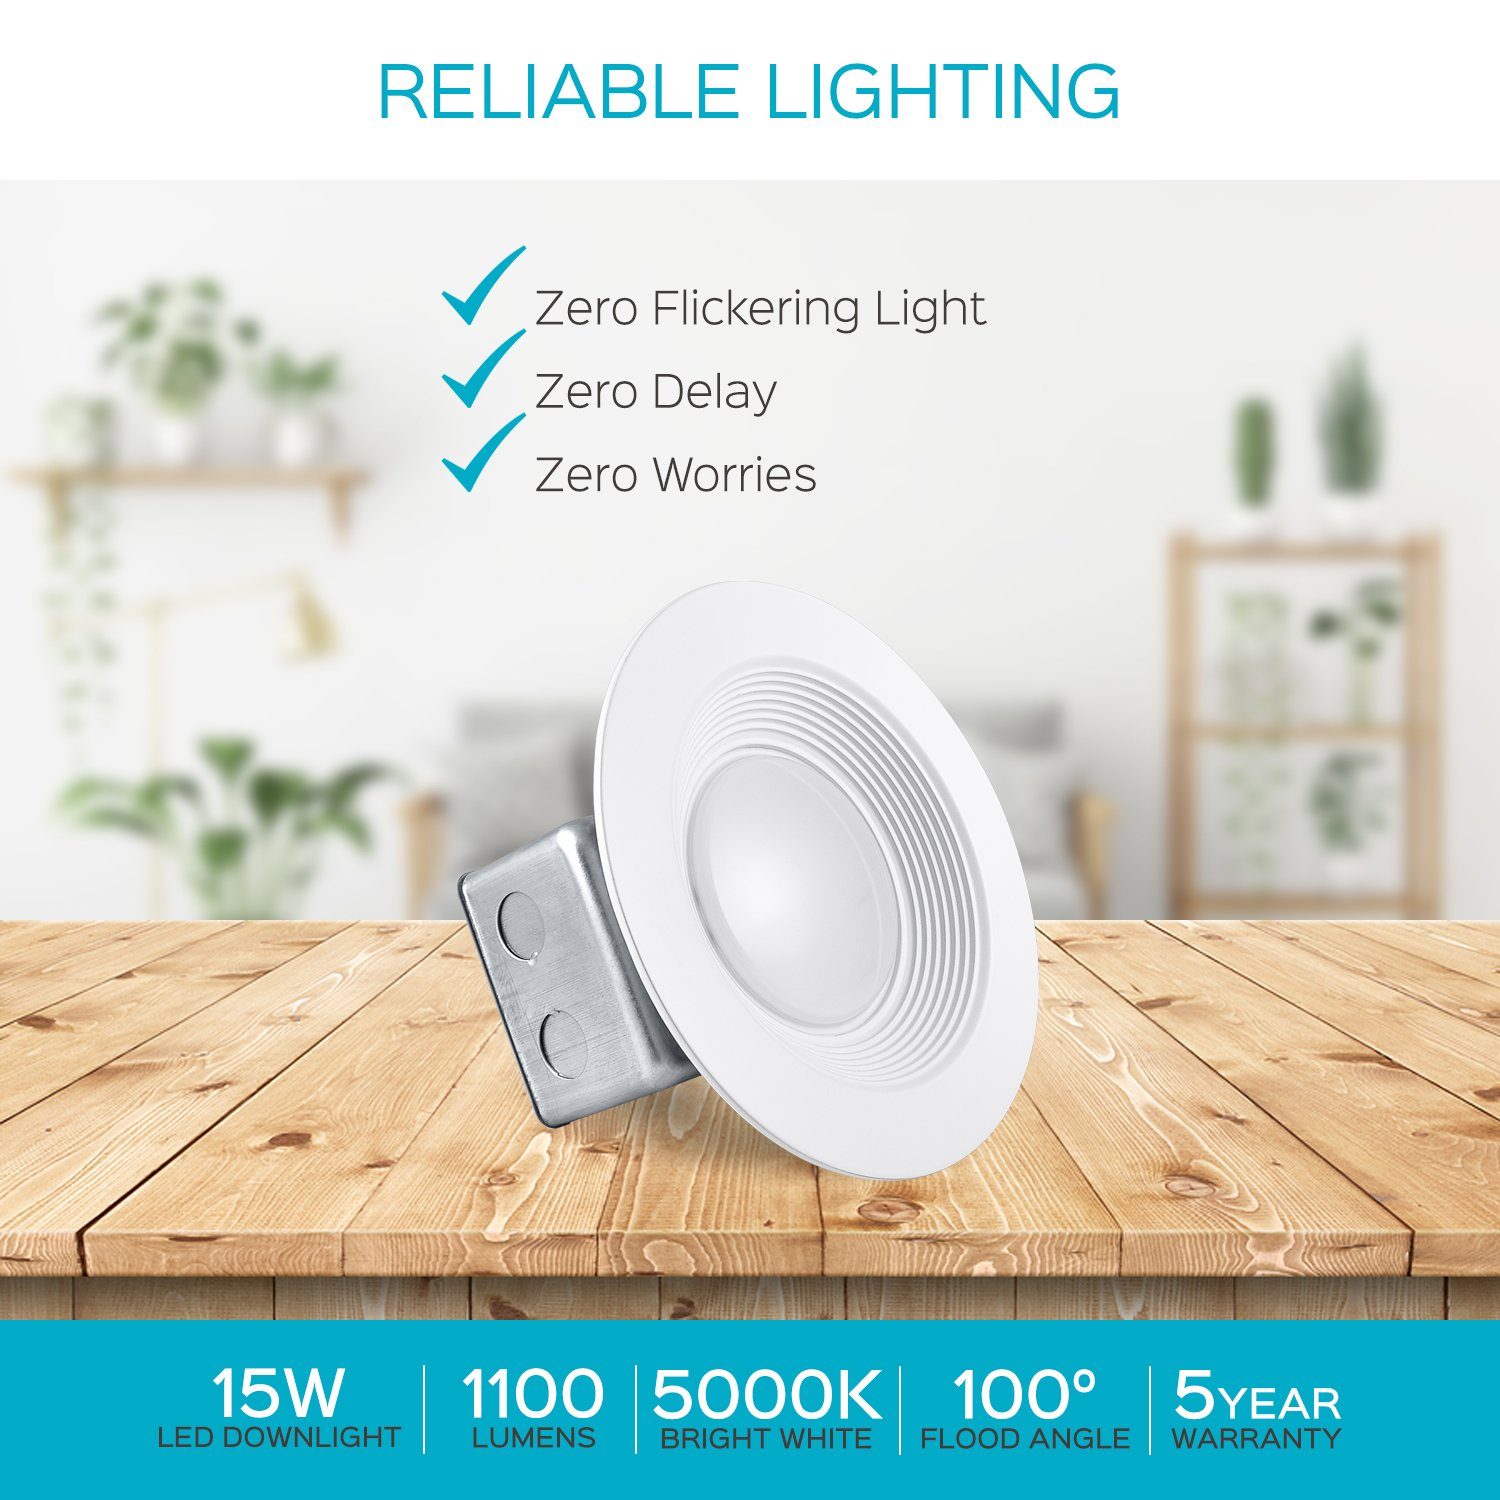 Luxrite 5/6 Inch LED Recessed Light with Junction Box, 15W, 5000K Bright White, Dimmable Airtight Downlight, 1100 Lumens, Energy Star, IC & Wet Rated, 120V - 277V, Recessed Lighting Kit (12 Pack) by LUXRITE (Image #9)